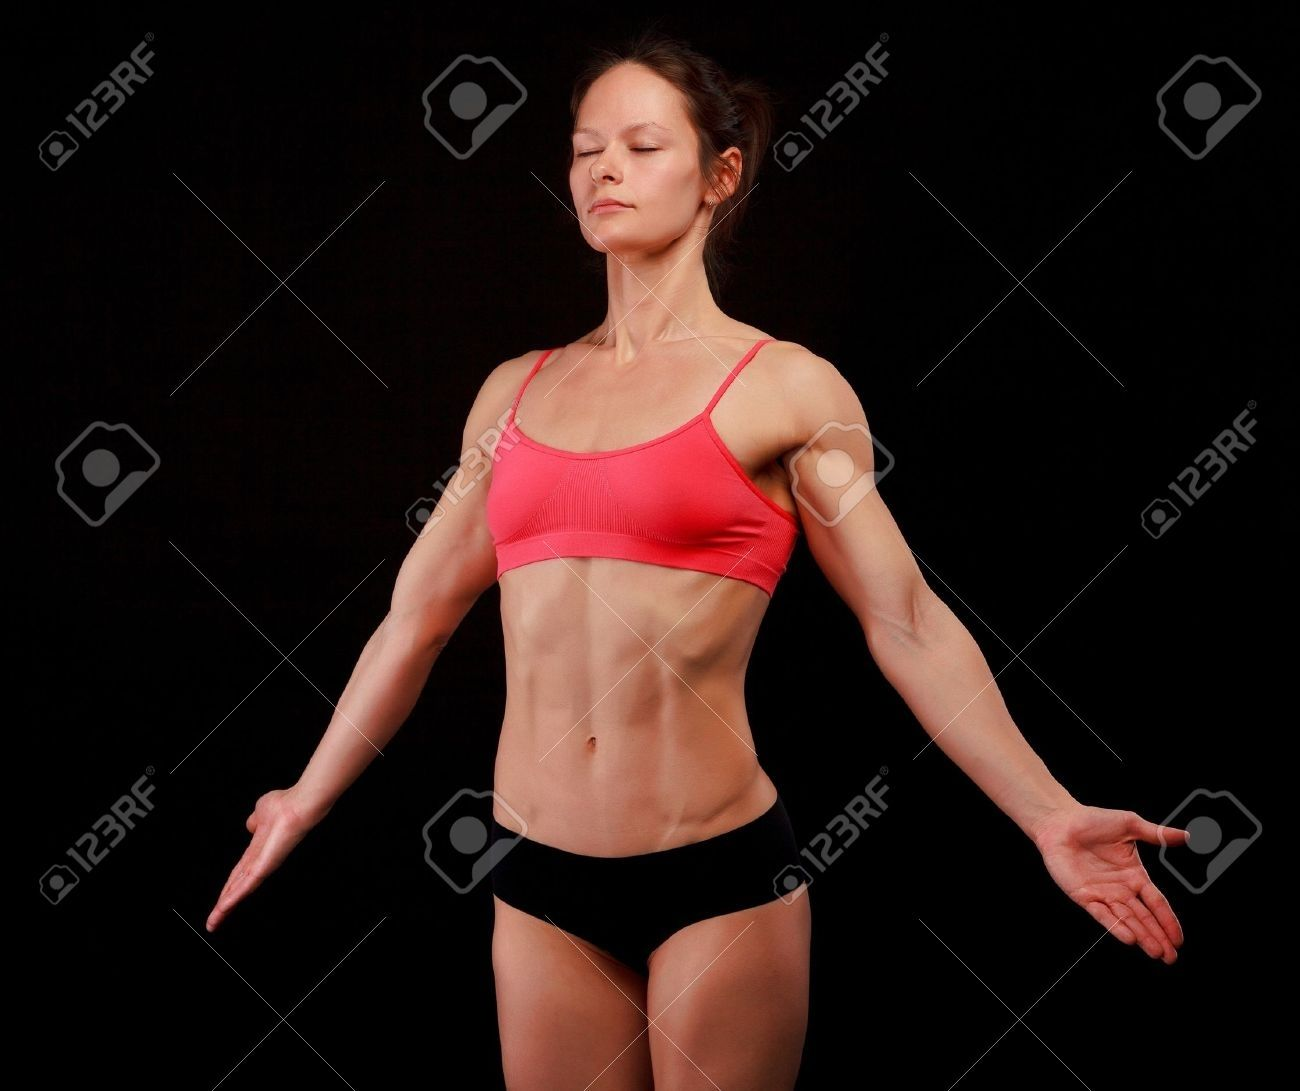 Abdominal Muscle Anatomy Female Abdominal Muscle Anatomy Female ...